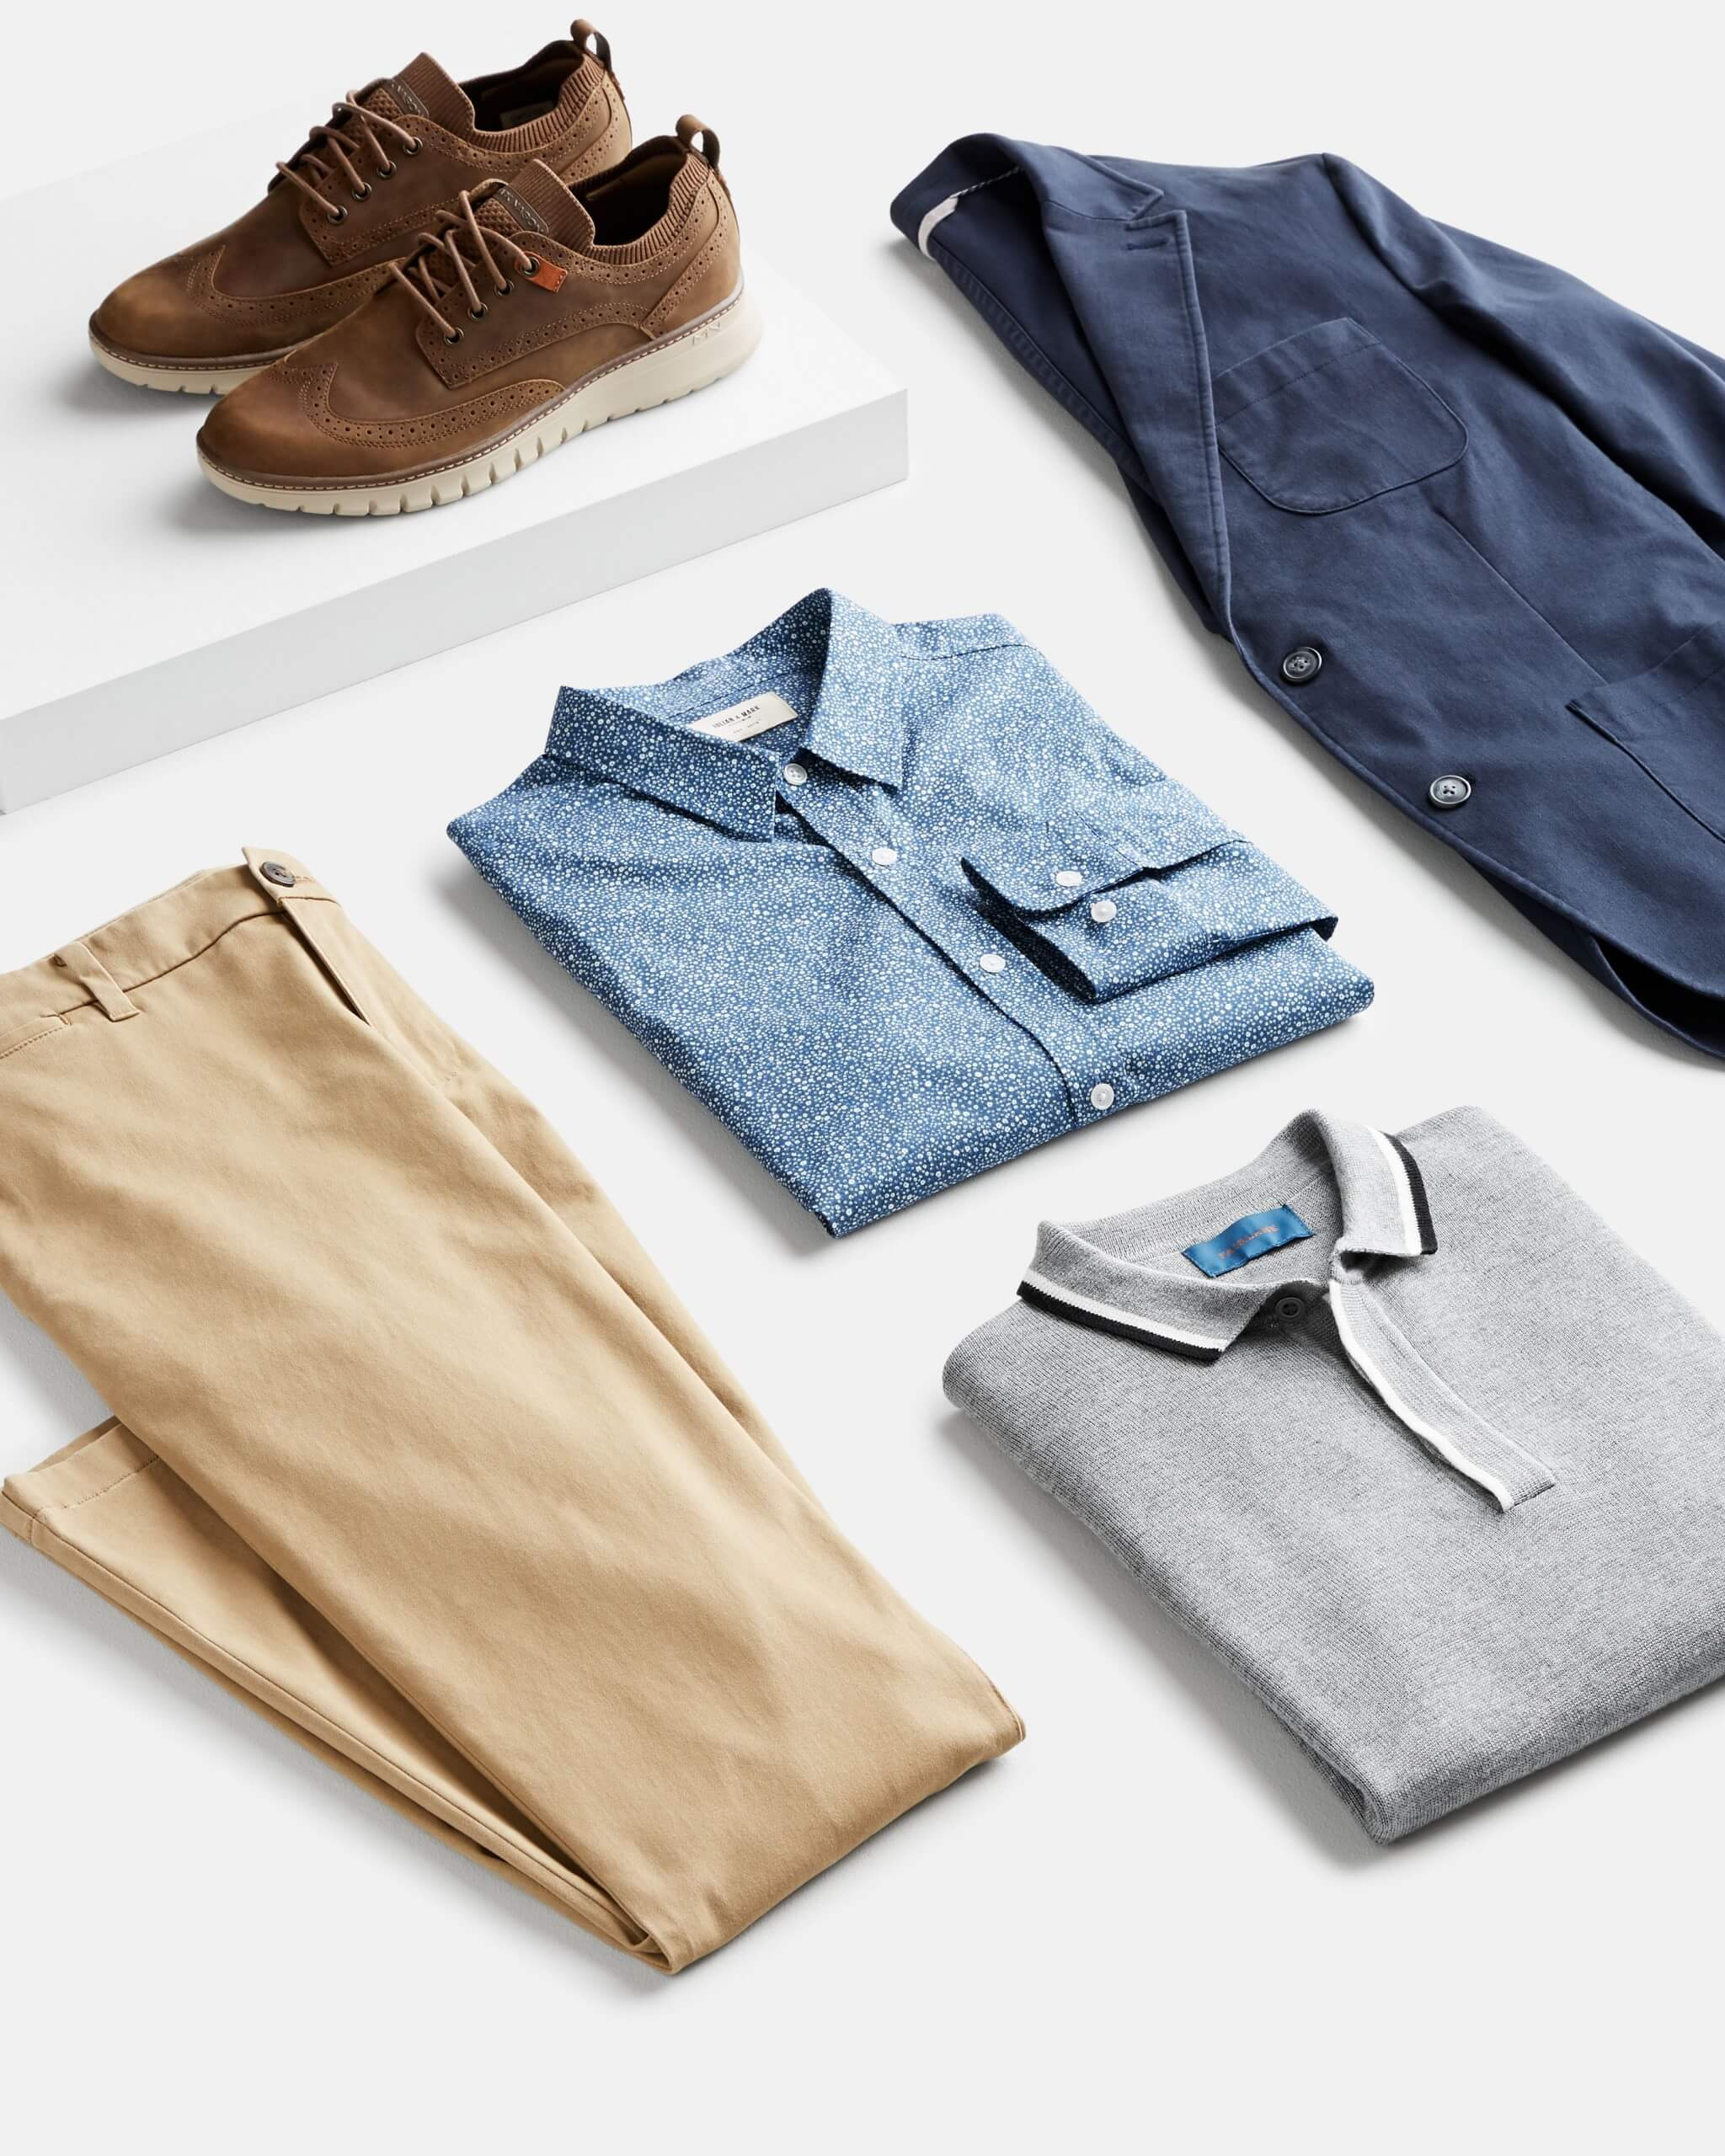 Stitch Fix Men's outfit laydown featuring khaki pants, grey polo, chambray button-up, navy blazer and brown oxford shoes.